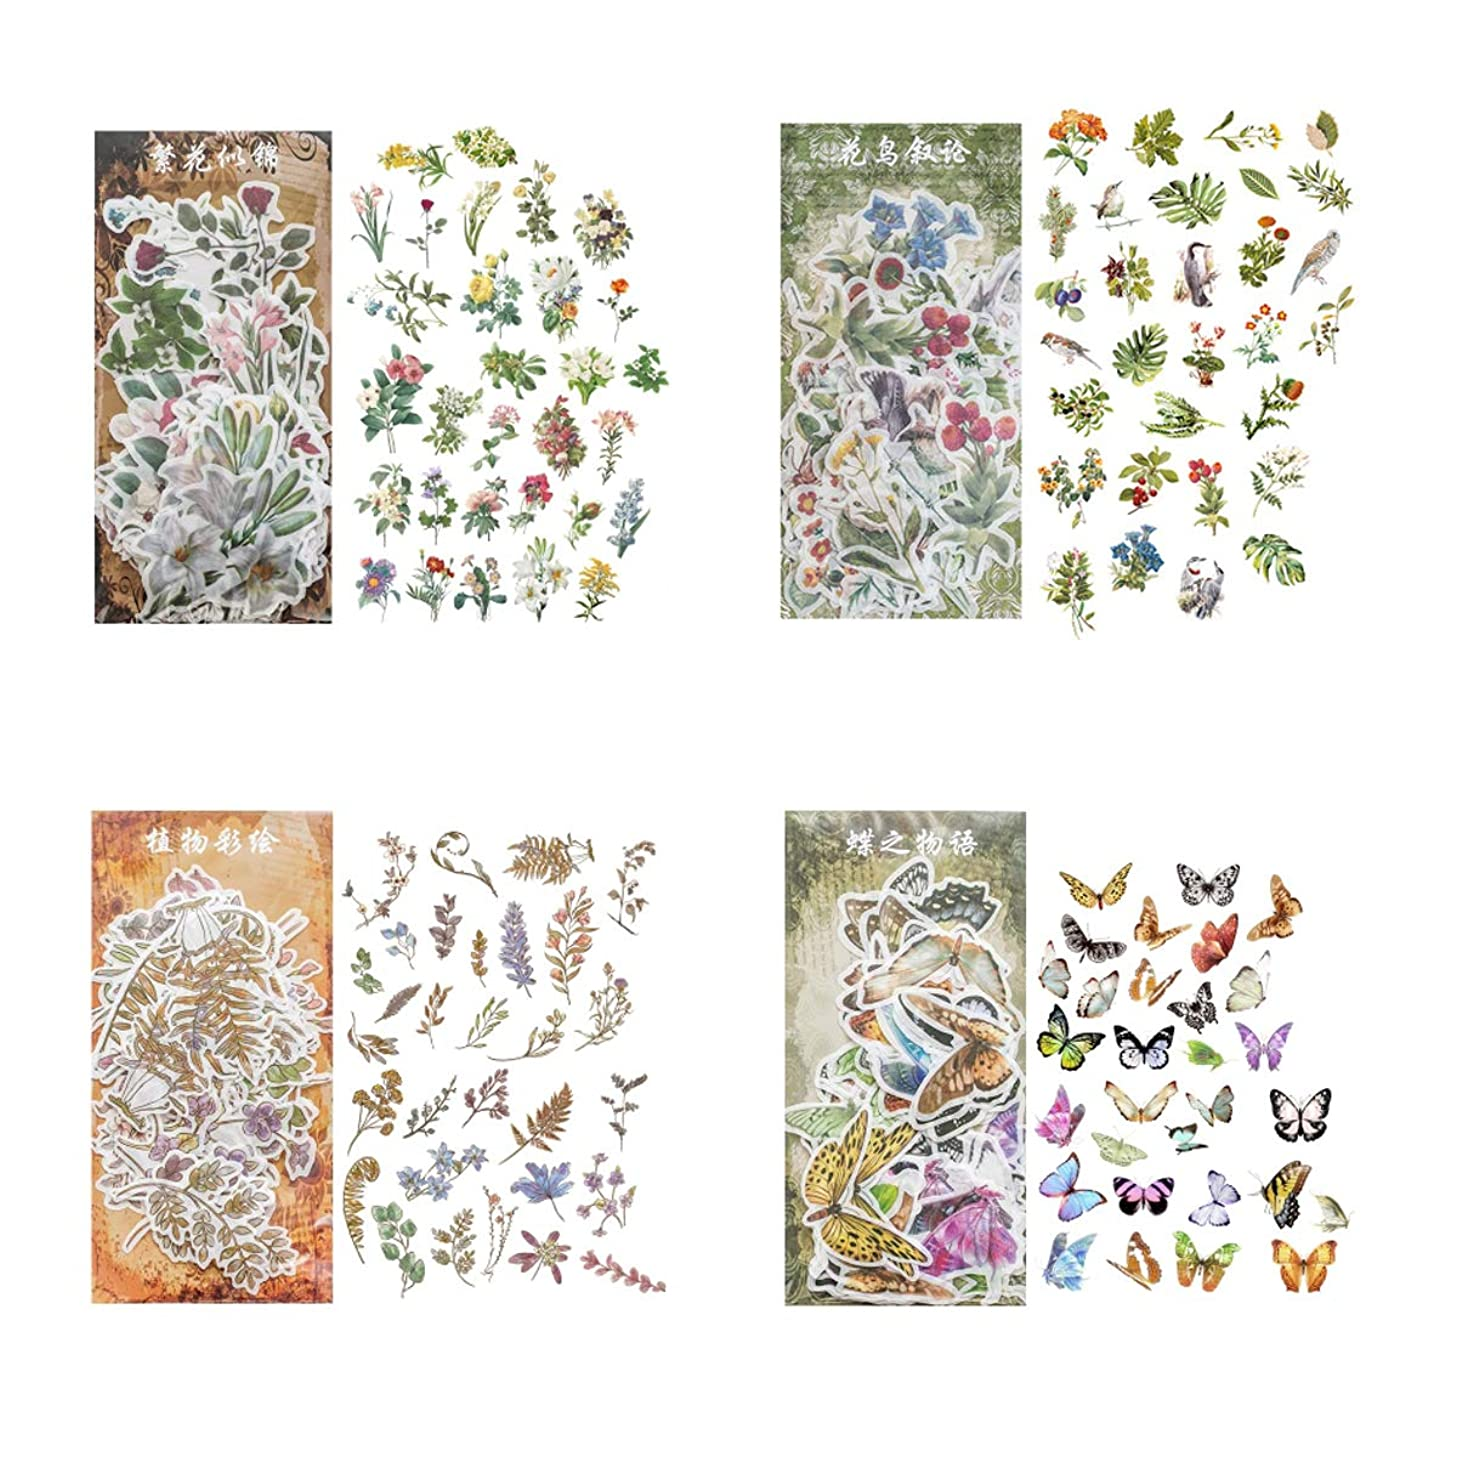 Washi Paper Sticker Set (4 Set,240 Pieces) Color Butterfly Nature Plant Branch Leaf Flower Floral Bird Stationery Stickers Craft Art Gift DIY Label for Journal Planner Agenda Diary Scrapbook Album